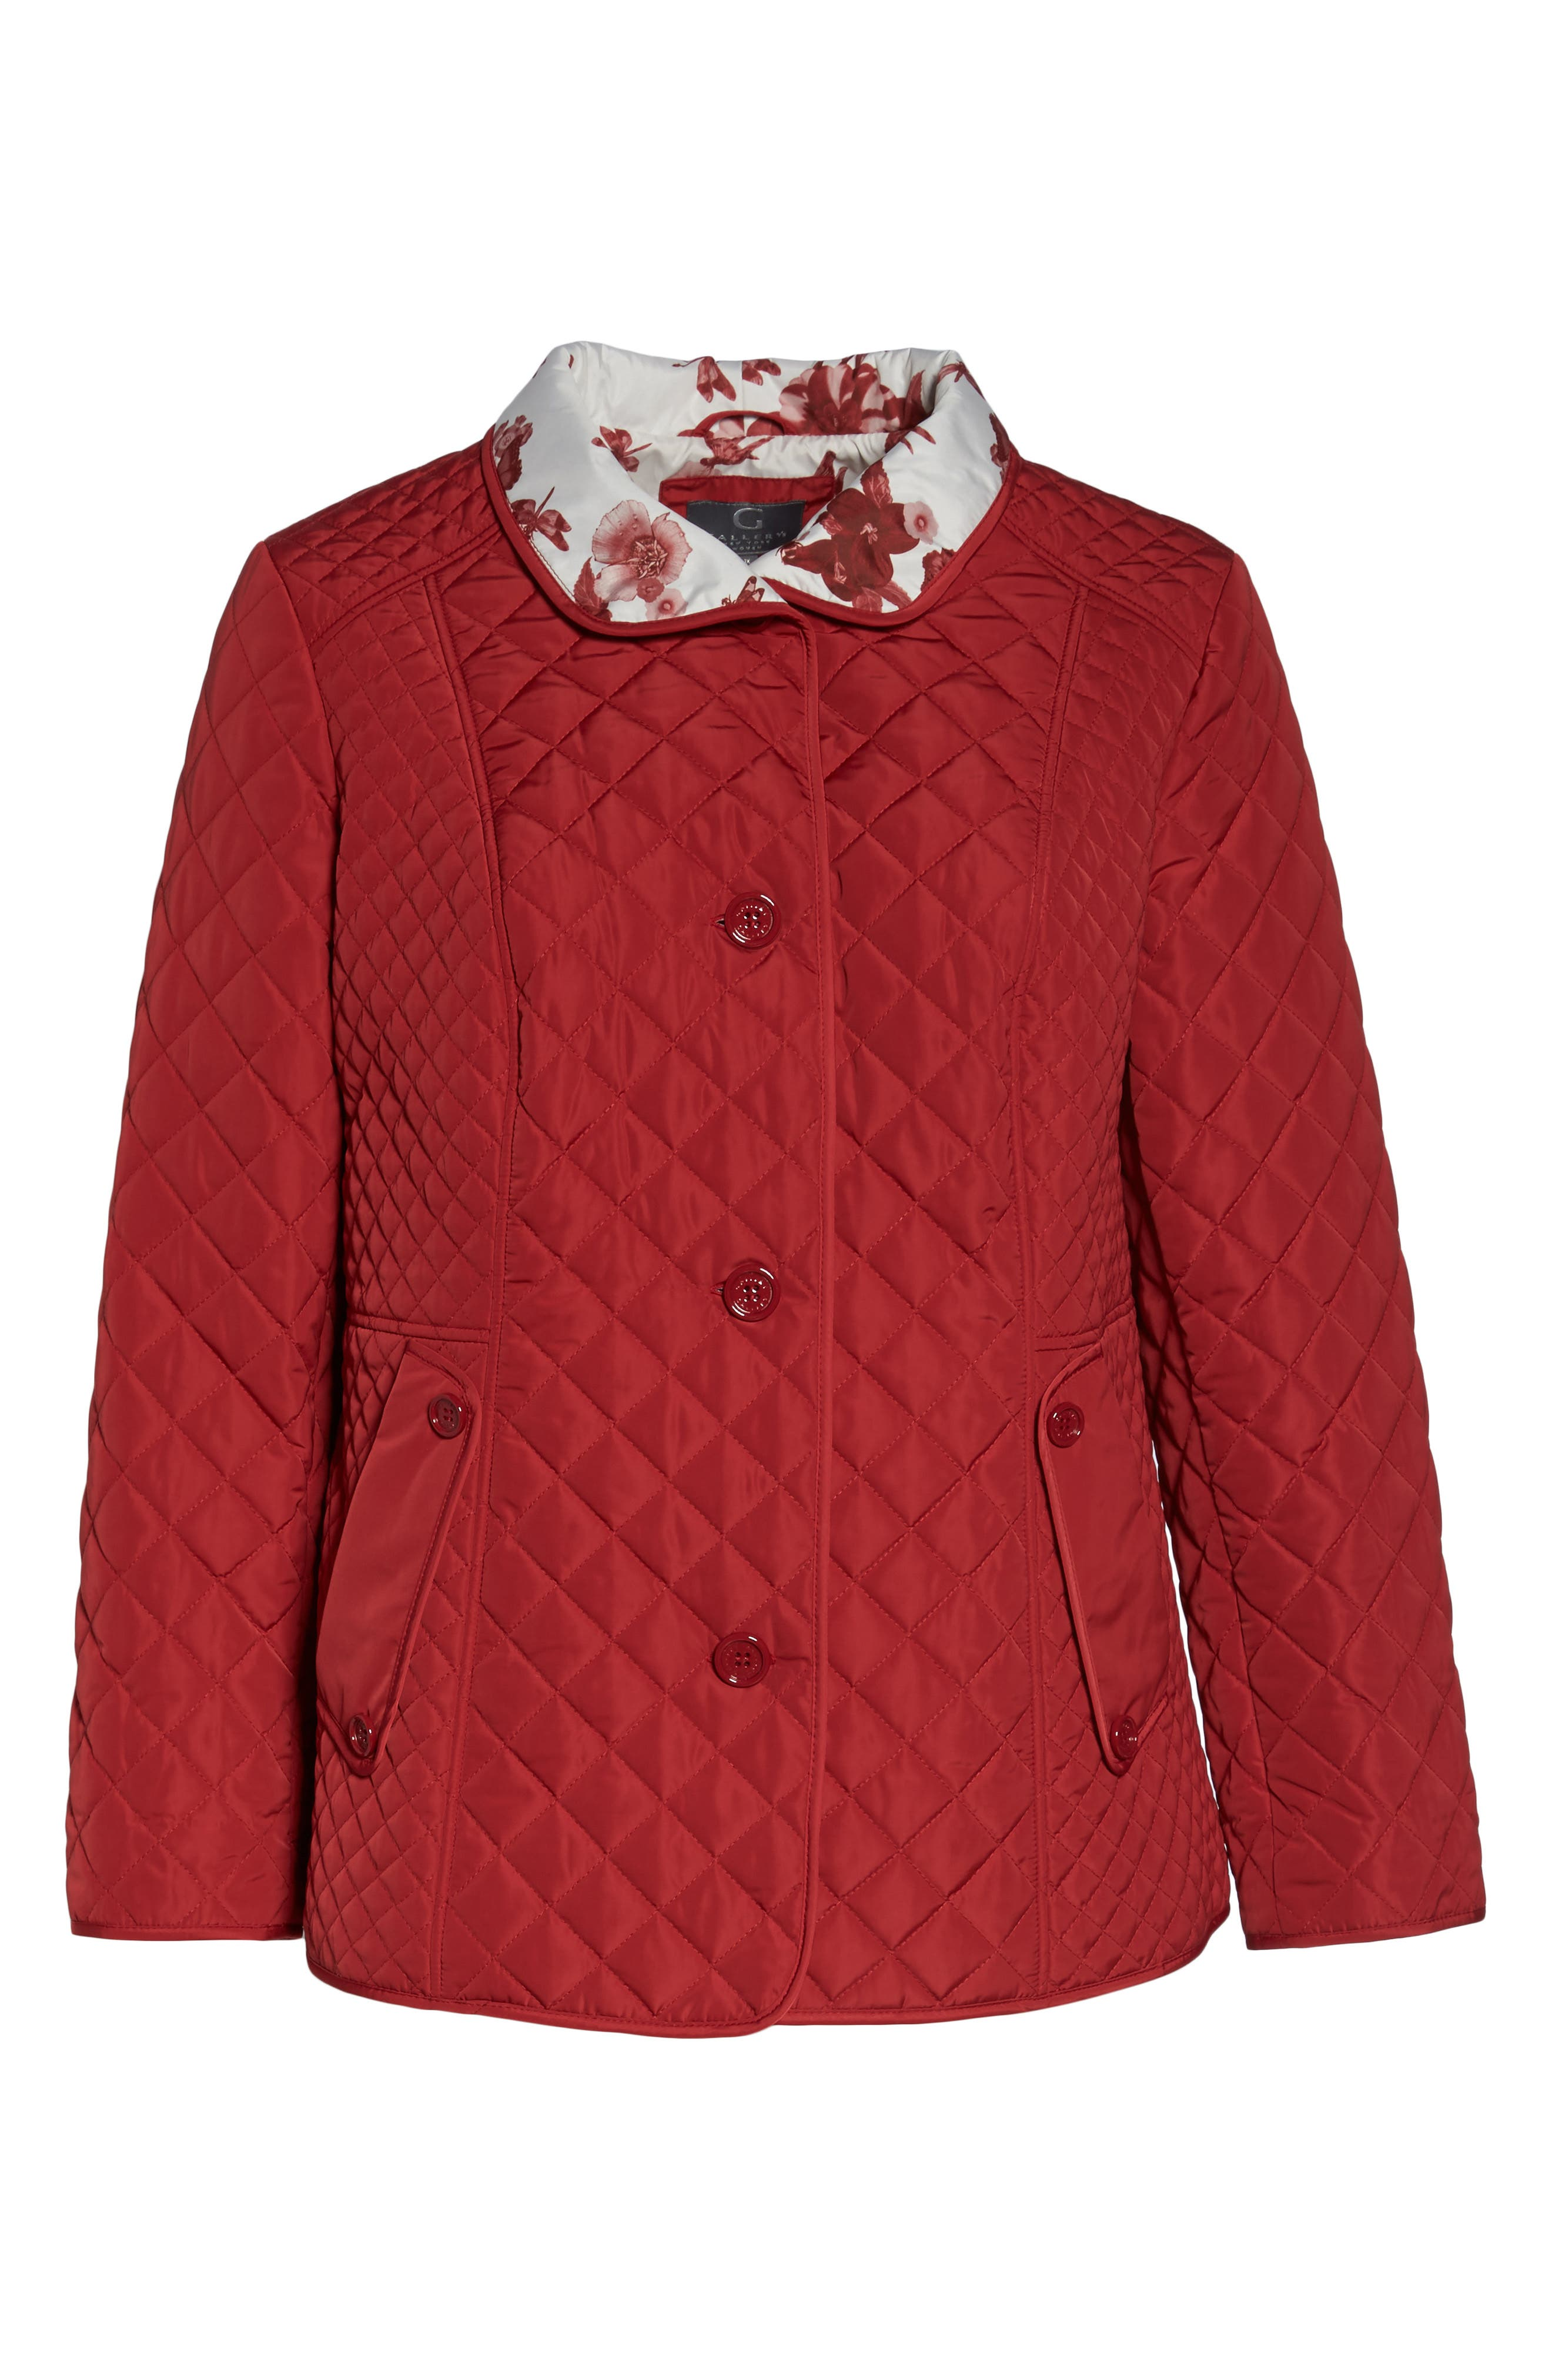 Print Collar Quilted Jacket,                             Main thumbnail 1, color,                             Tomato Red